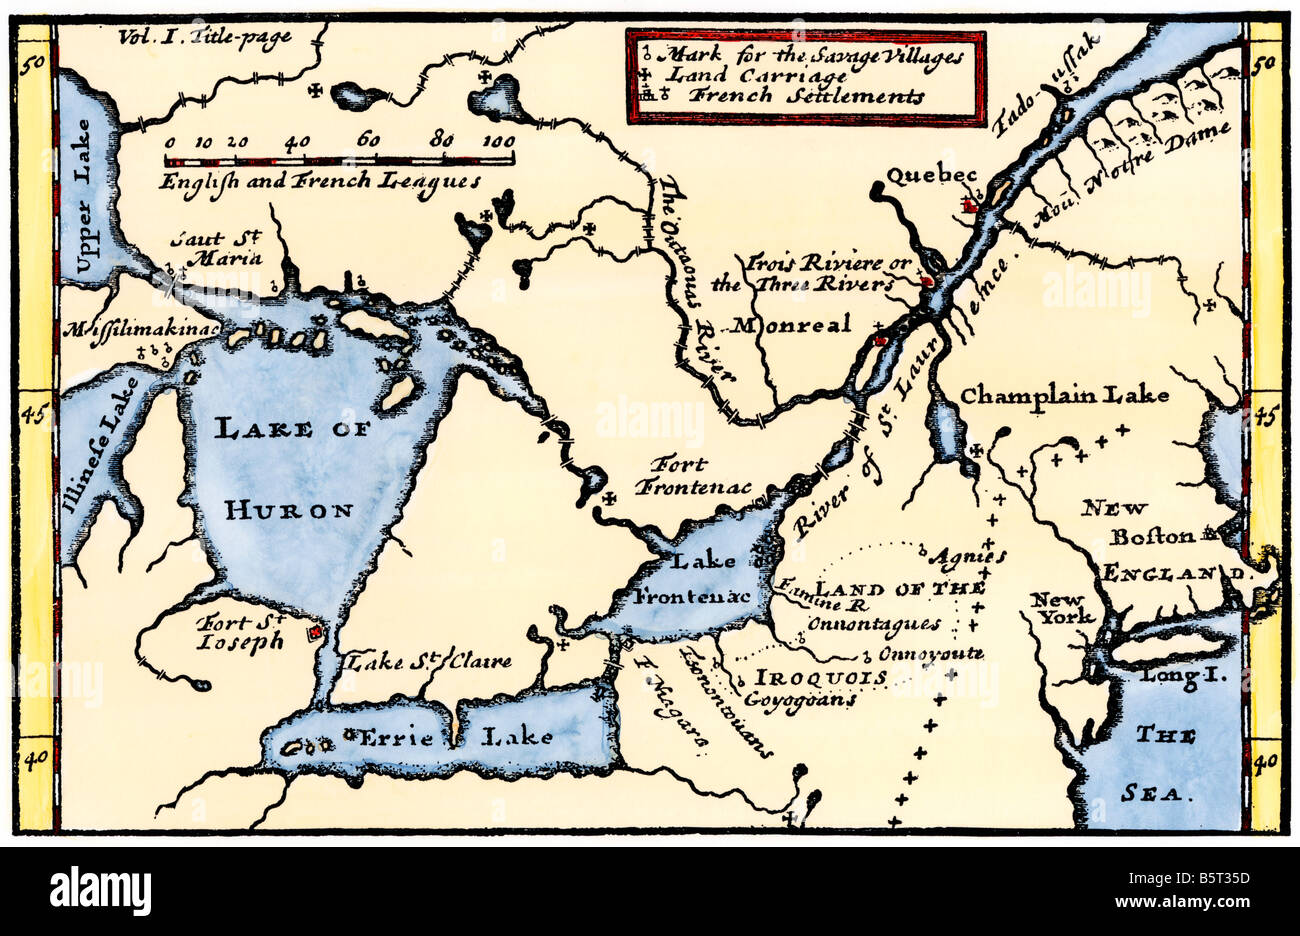 La Hontan's map of the Great Lakes and Saint Lawrence valley 1703. Hand-colored woodcut - Stock Image